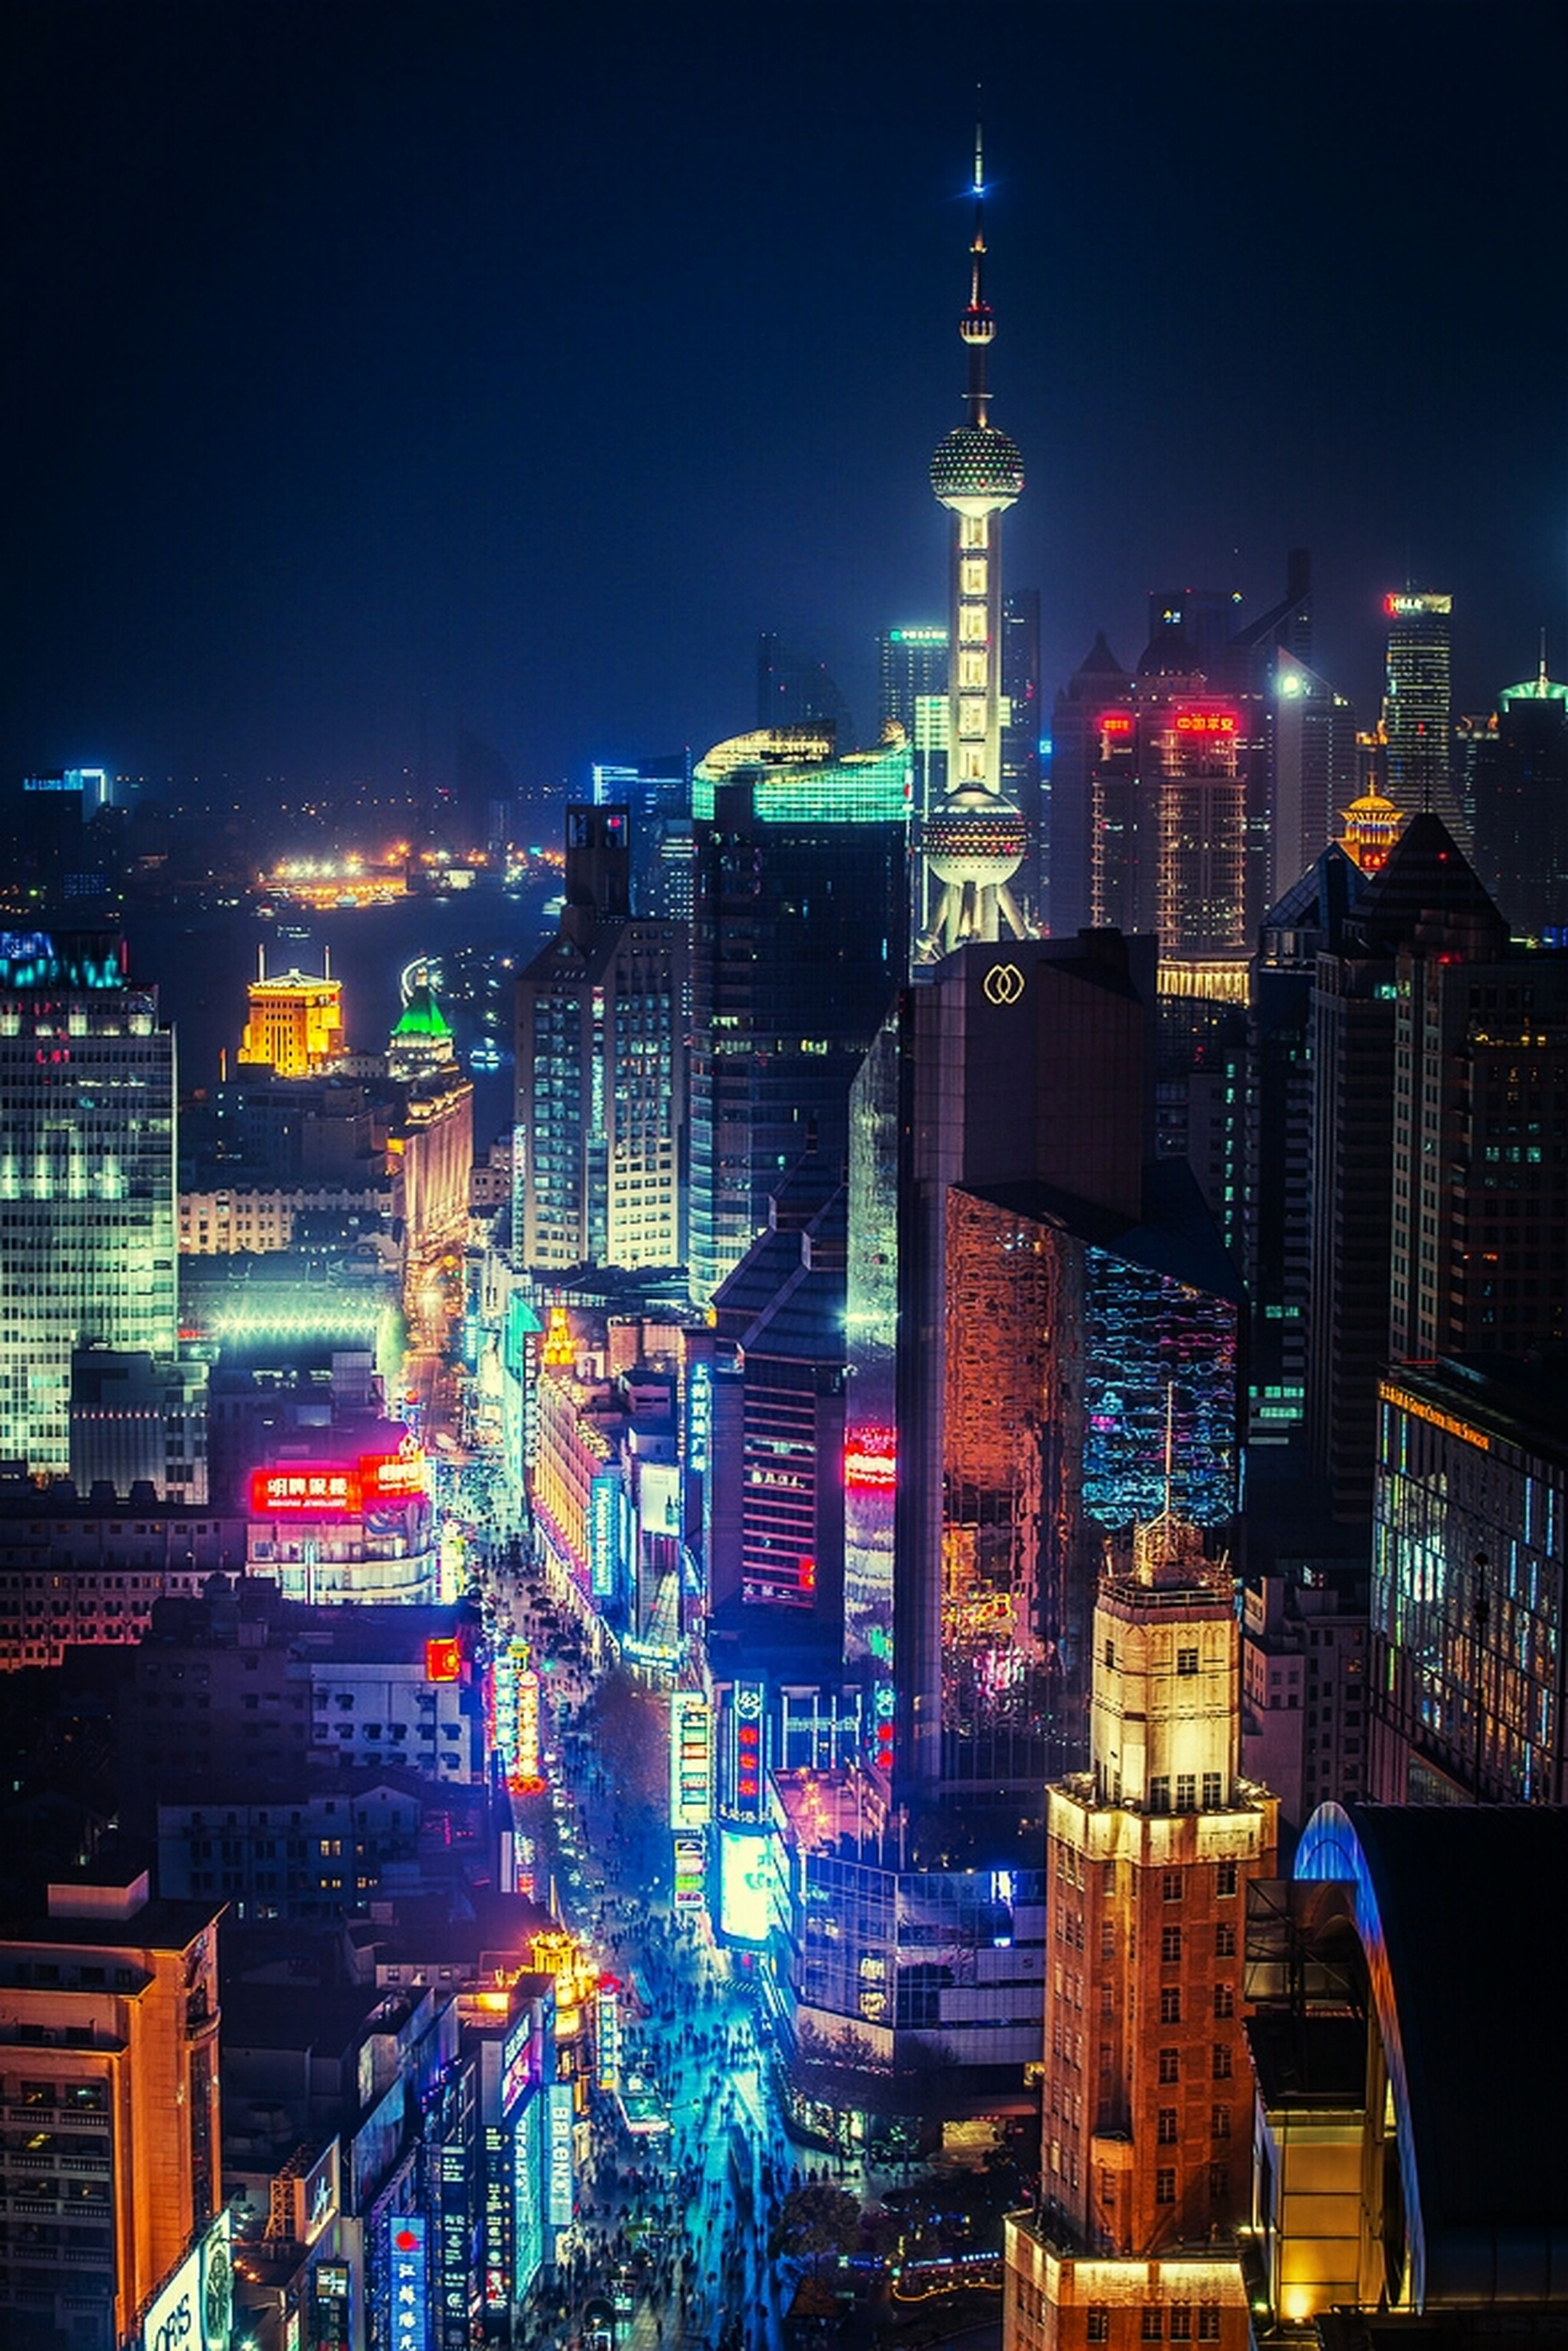 illuminated, night, city, architecture, building exterior, built structure, cityscape, skyscraper, tower, modern, tall - high, capital cities, office building, travel destinations, city life, famous place, financial district, high angle view, travel, crowded